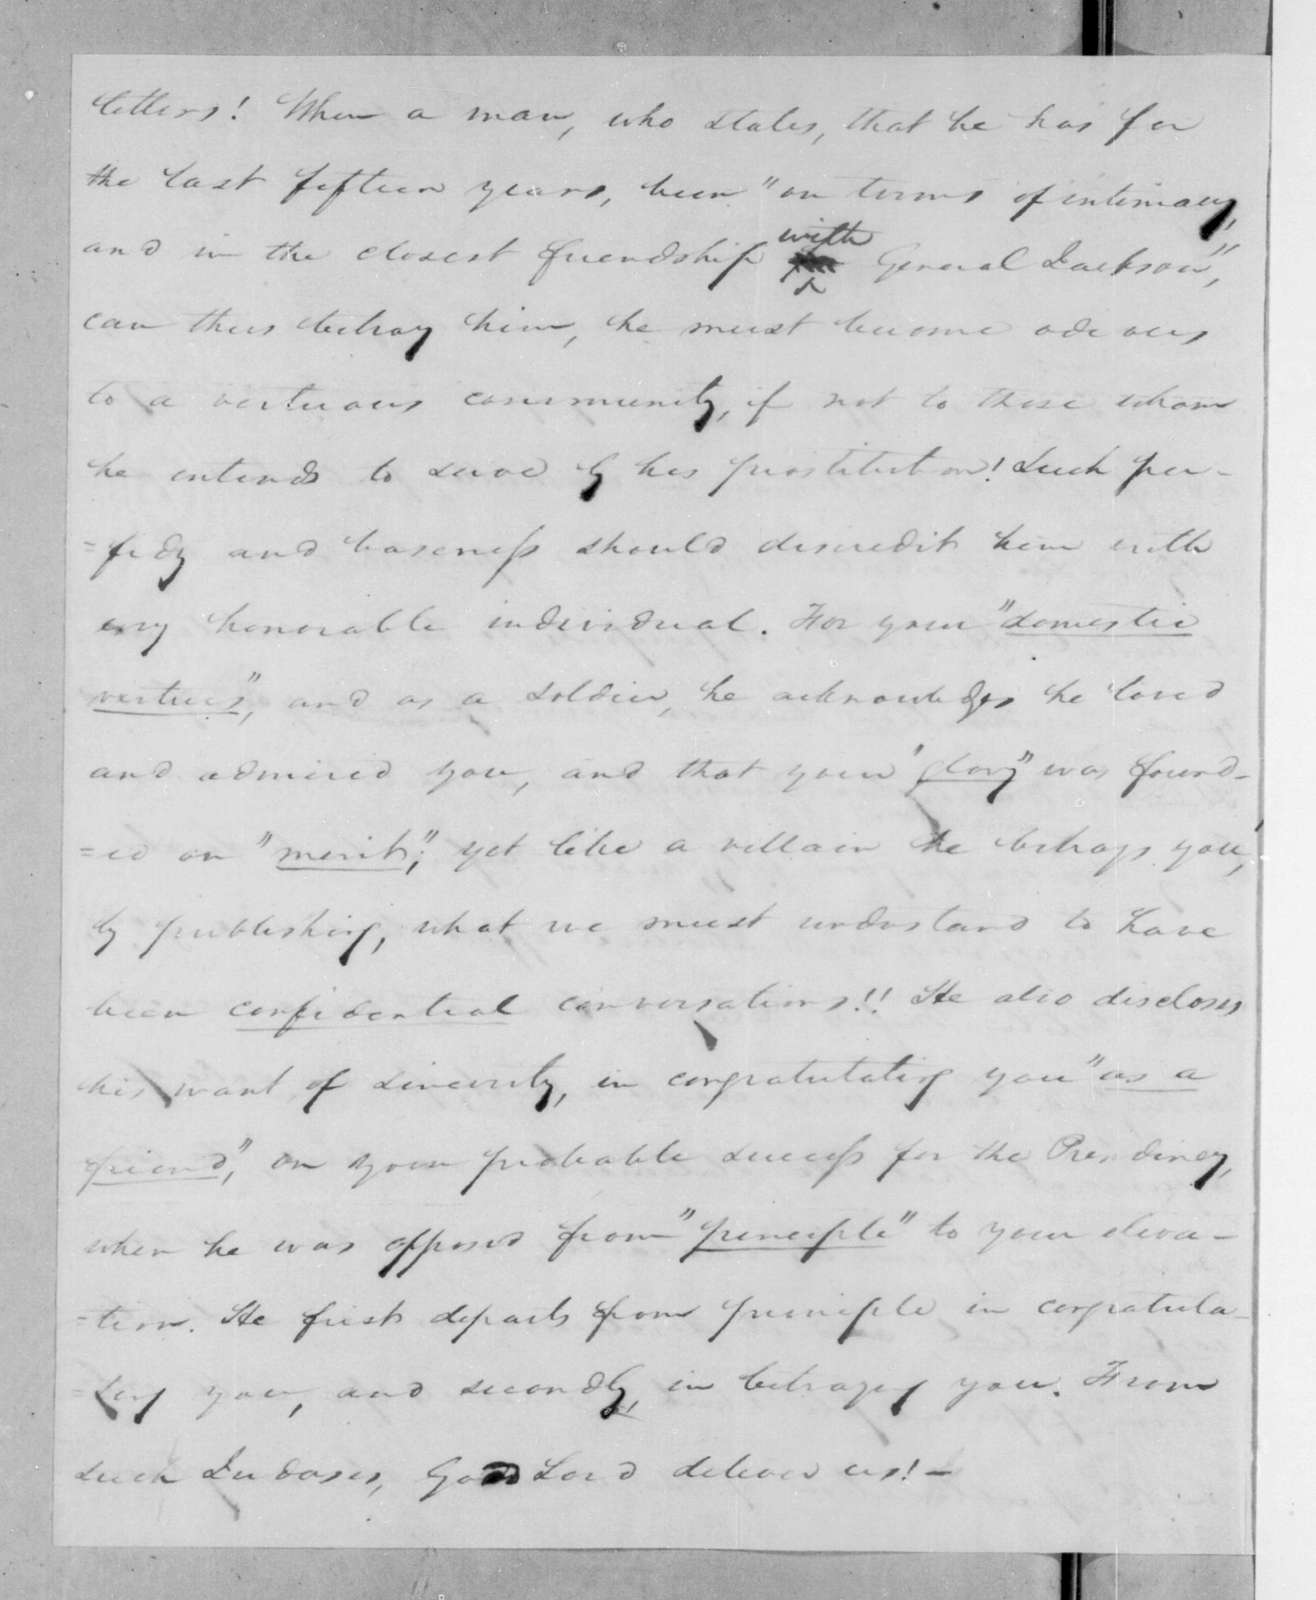 Samuel Ragland Overton to Andrew Jackson, April 12, 1825